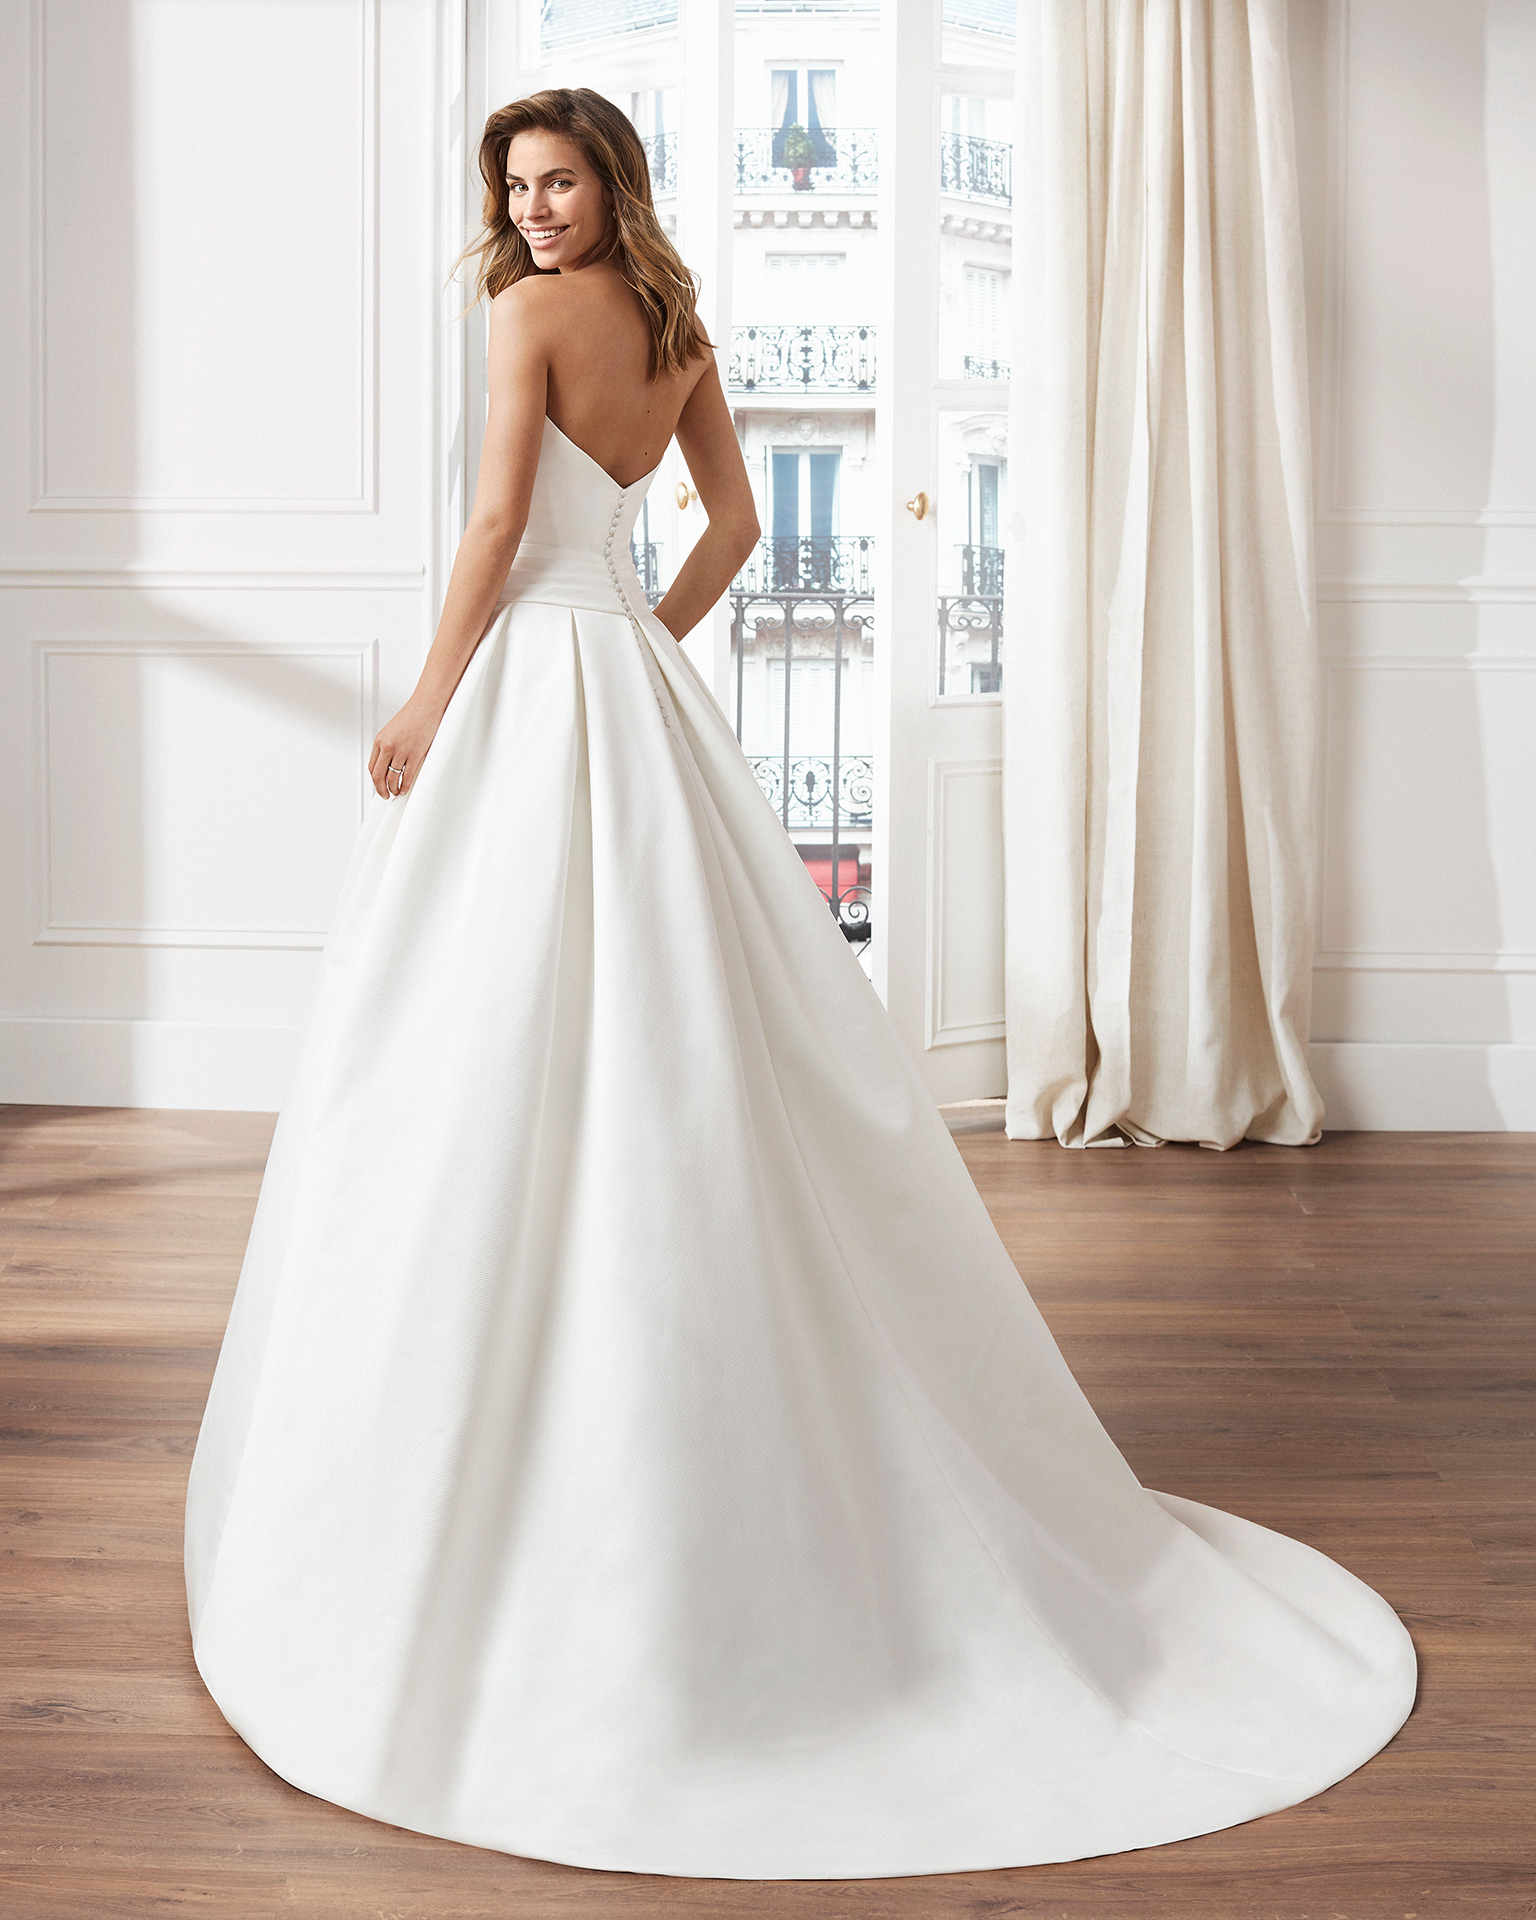 Classic A-line ottoman wedding dress. Strapless neckline and bow at the waist. Available in natural. 2019  Collection.